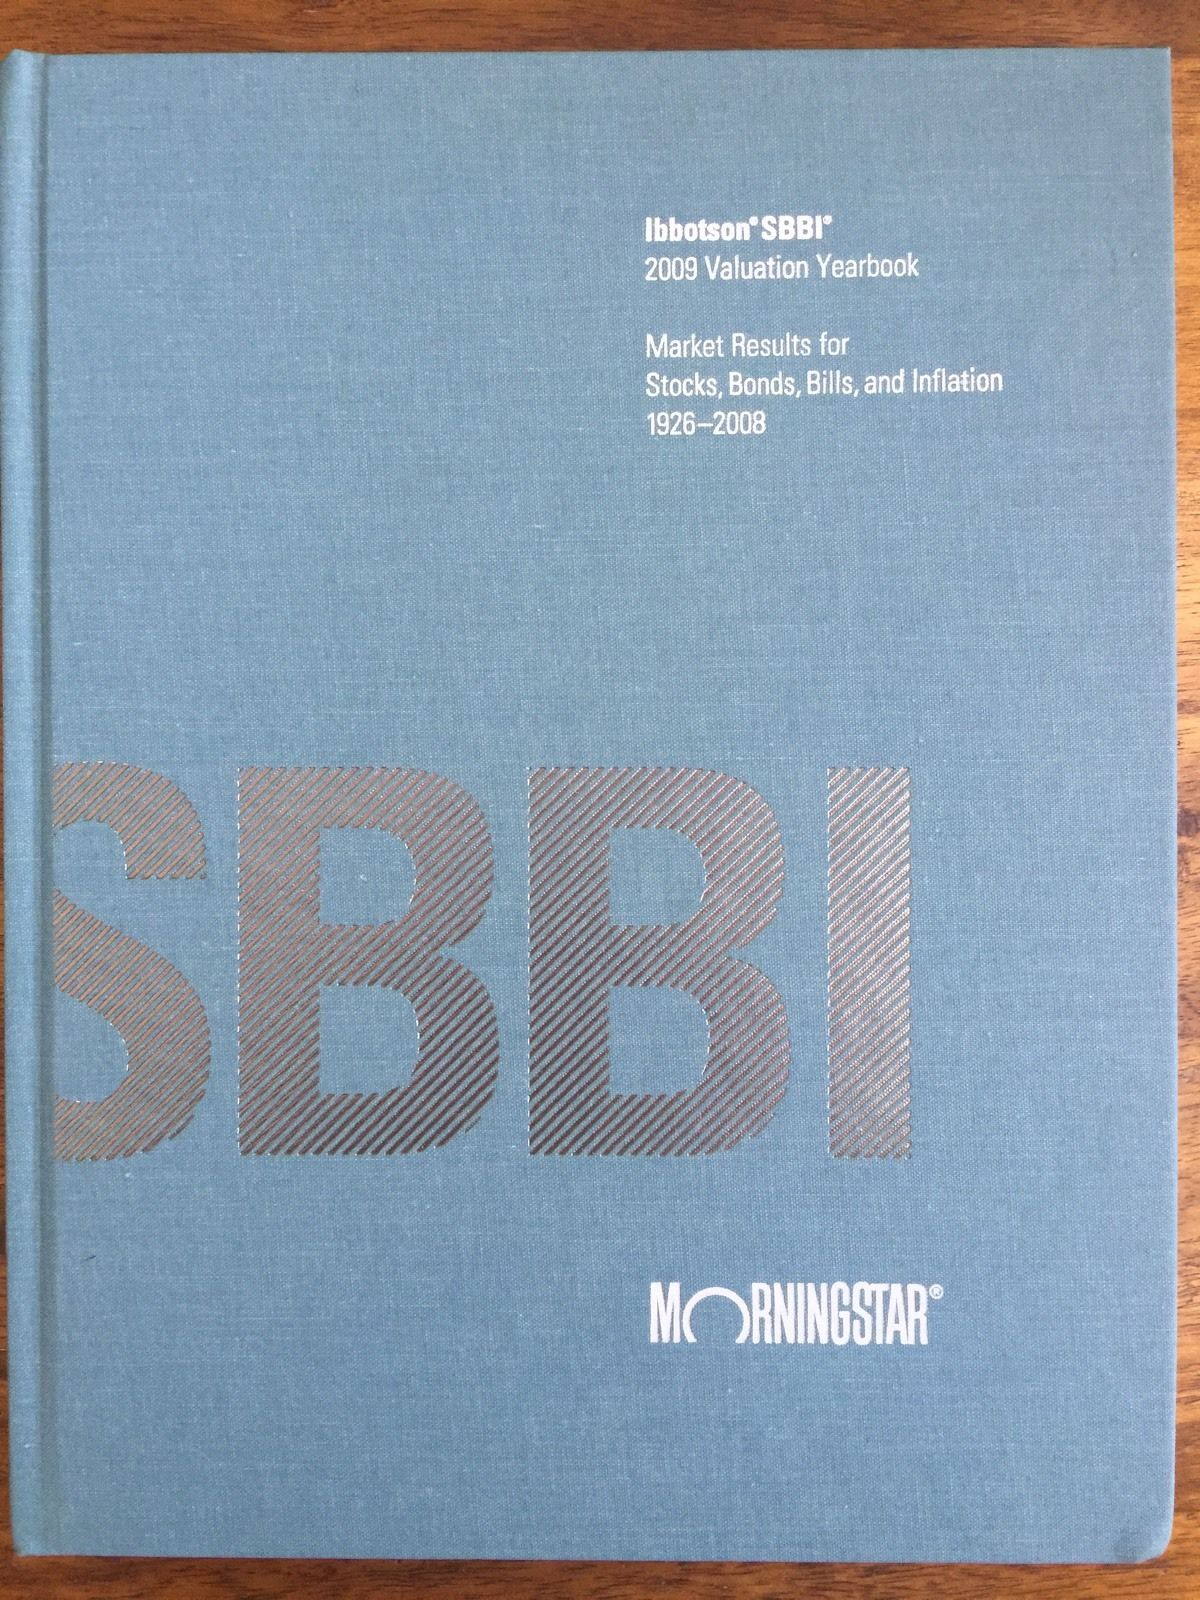 cover of Ibbotson SBBI Valuation Yearbook